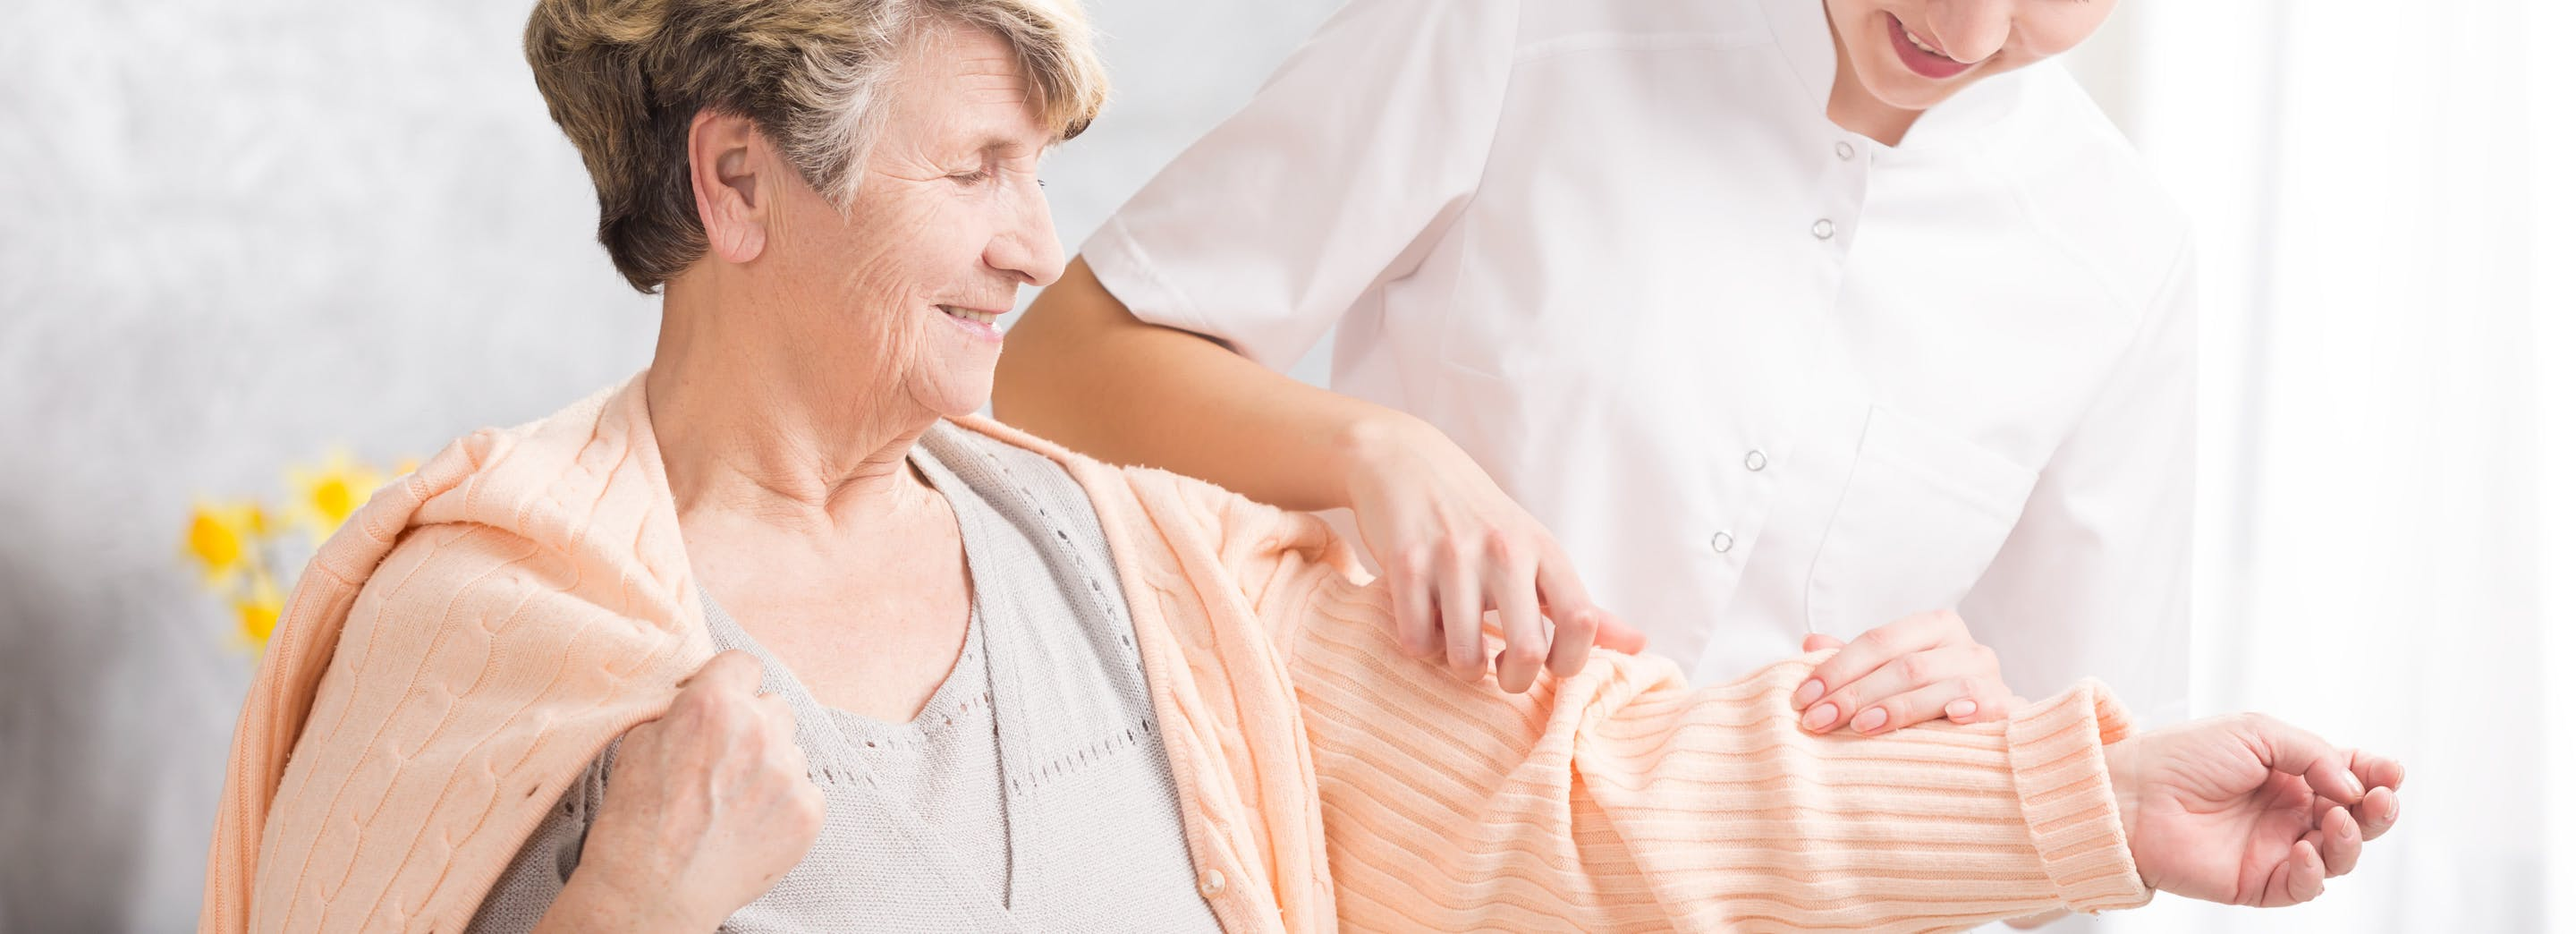 envato-elements/envato-elements-young-nurse-helping-elderly-woman-PAWNESZ-gz5.jpg